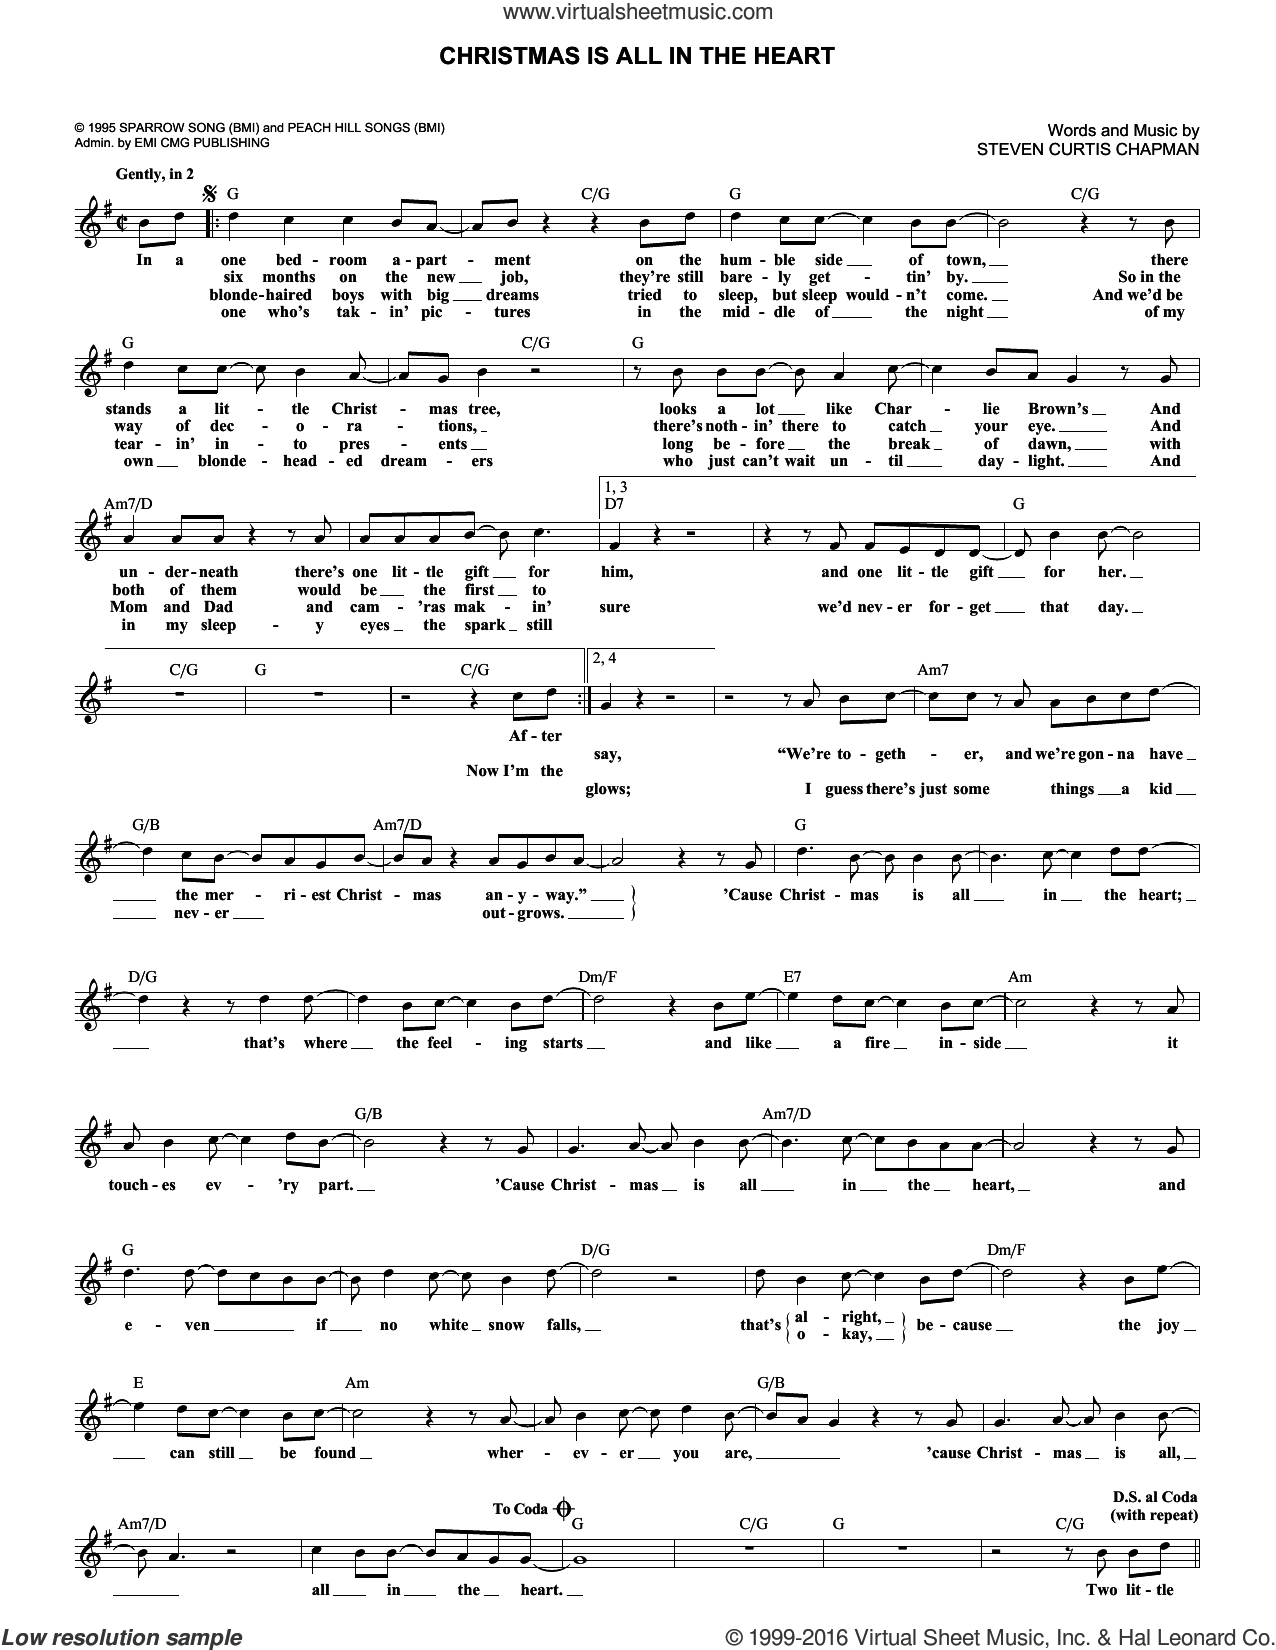 Christmas Is All In The Heart sheet music for voice and other instruments (fake book) by Steven Curtis Chapman, intermediate